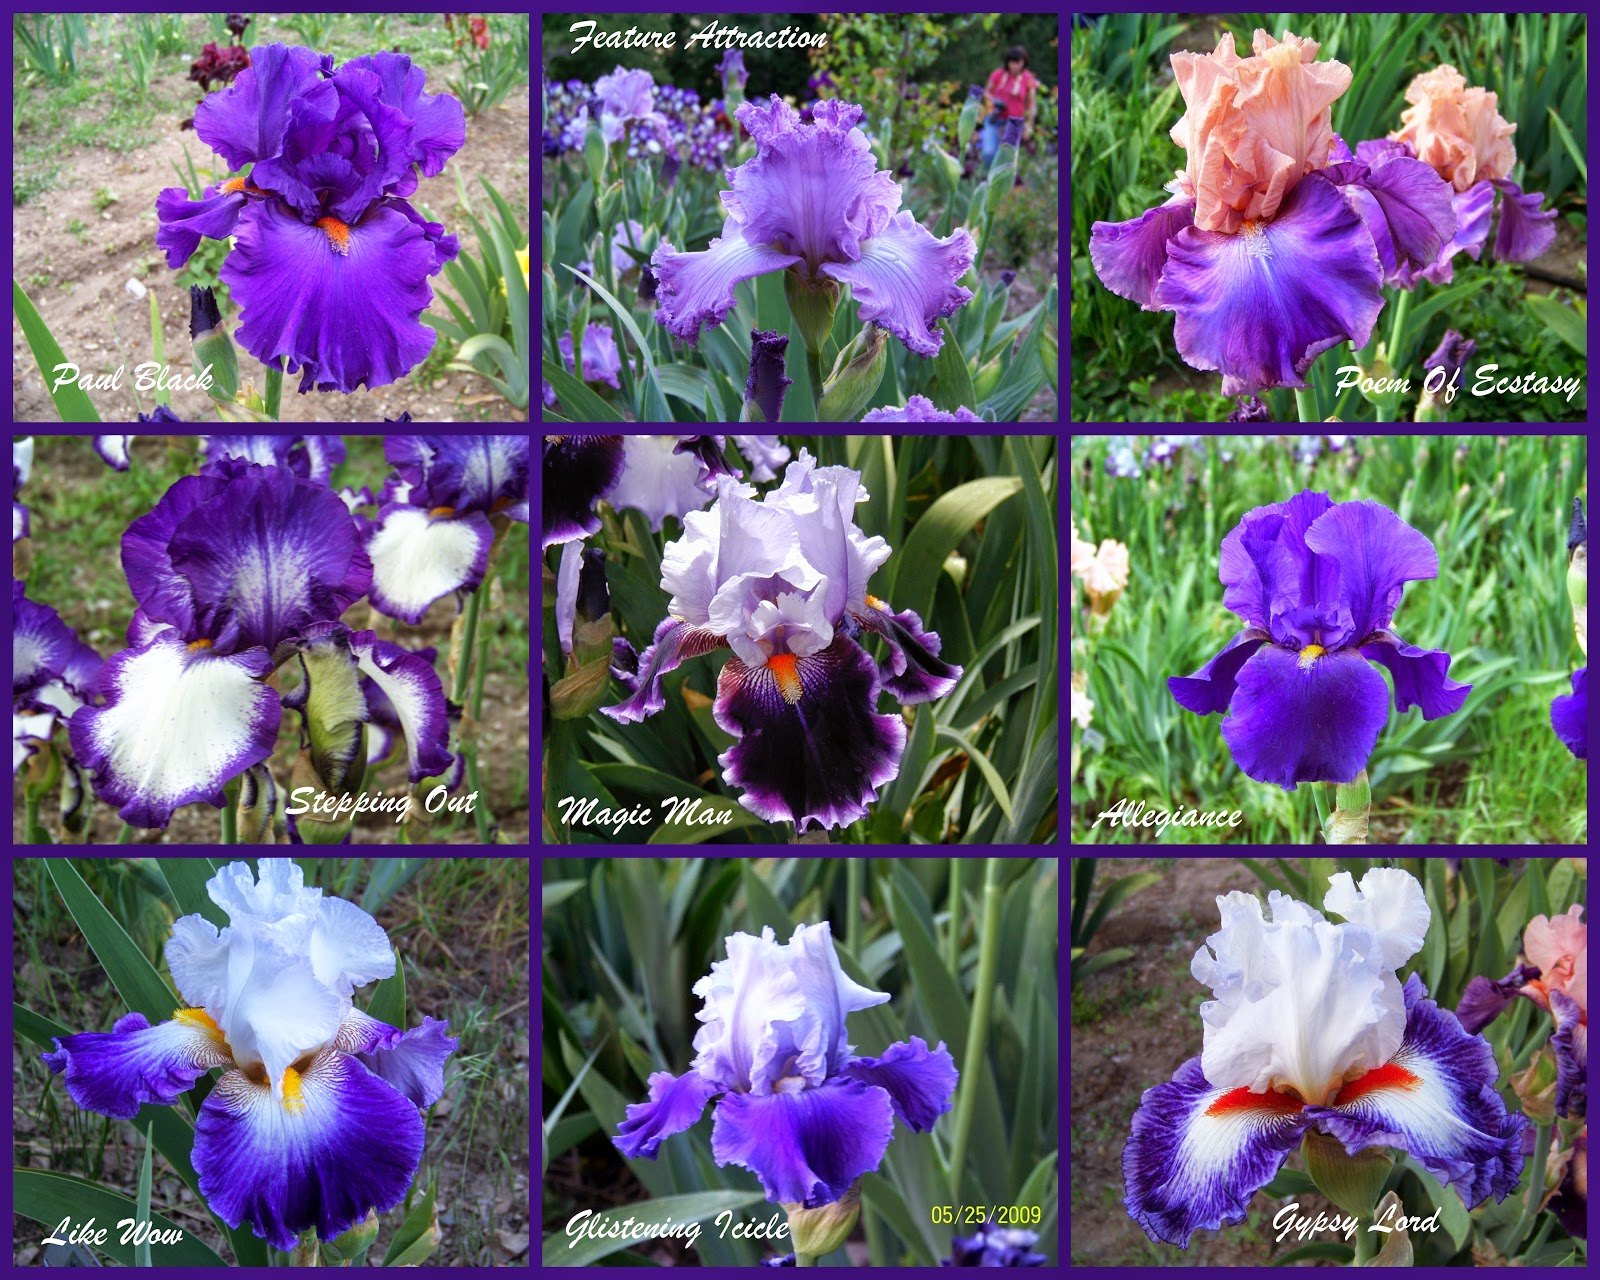 World of irises tall bearded iris my favorite purples part one feature attraction schreiner 1994 winner of the 1994 presidents cup at the american iris society national convention in portland oregon izmirmasajfo